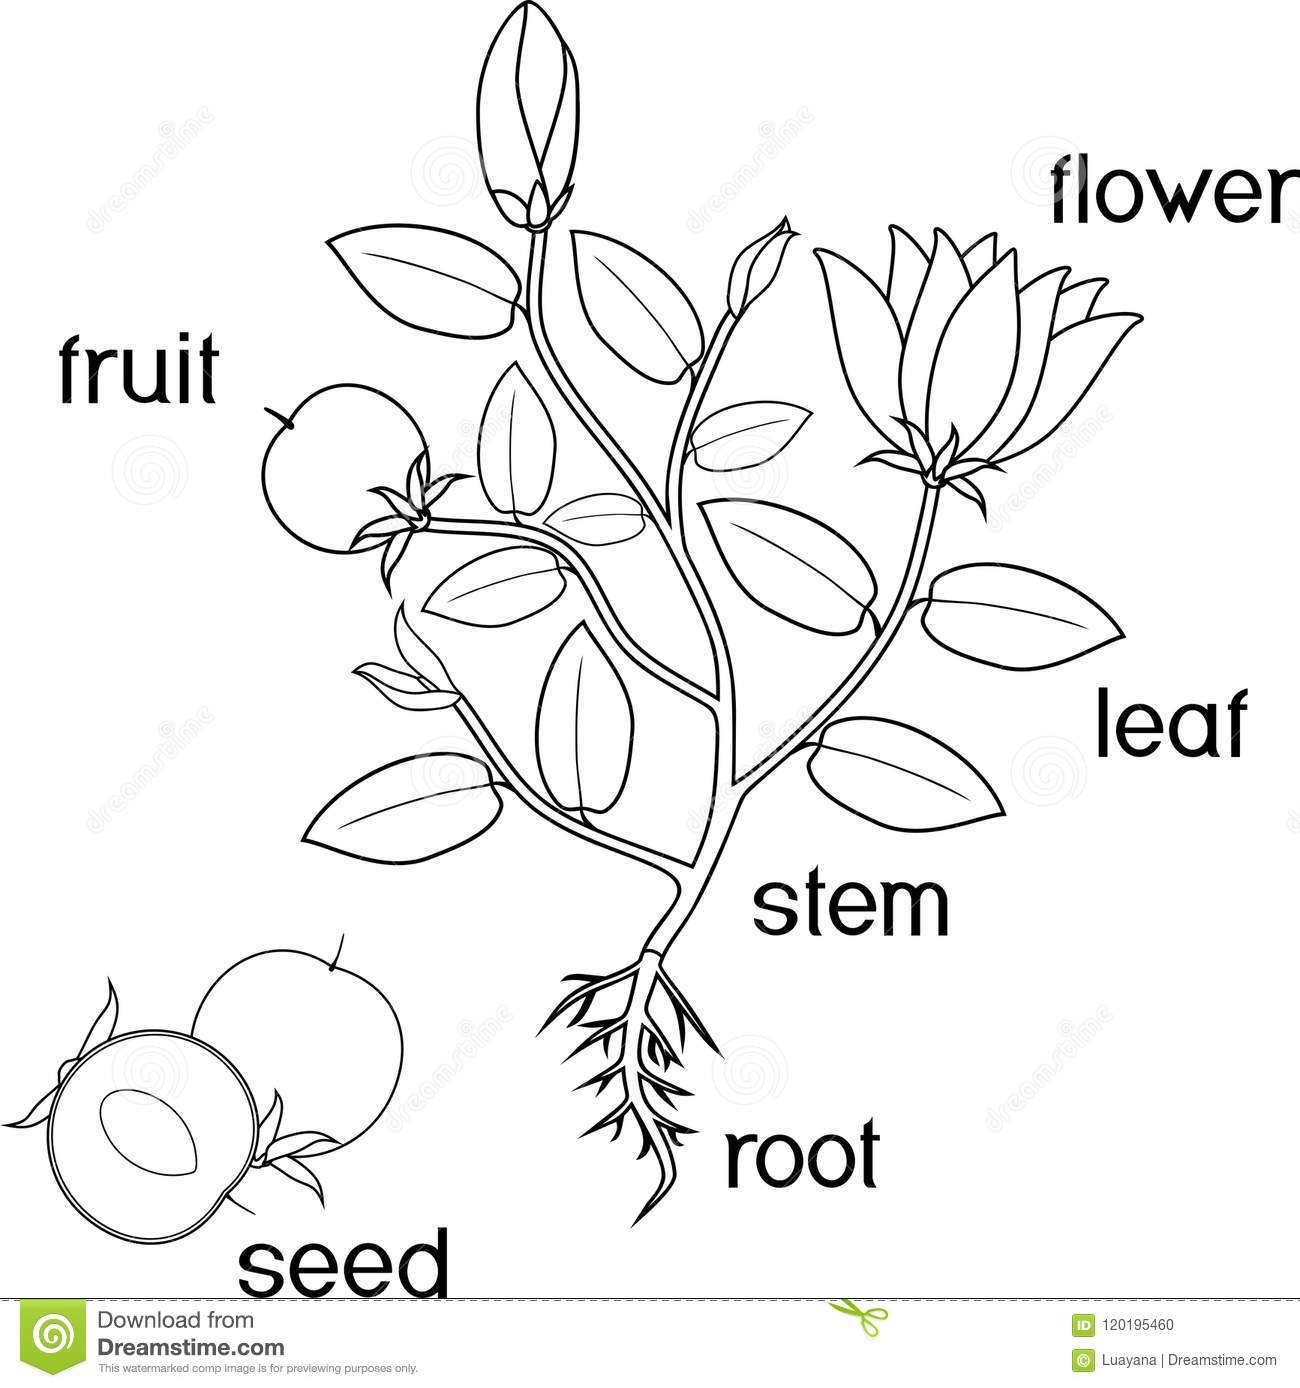 colouring sheets flowers and plants colouring page garden coloring pages easy plants to flowers colouring sheets plants and